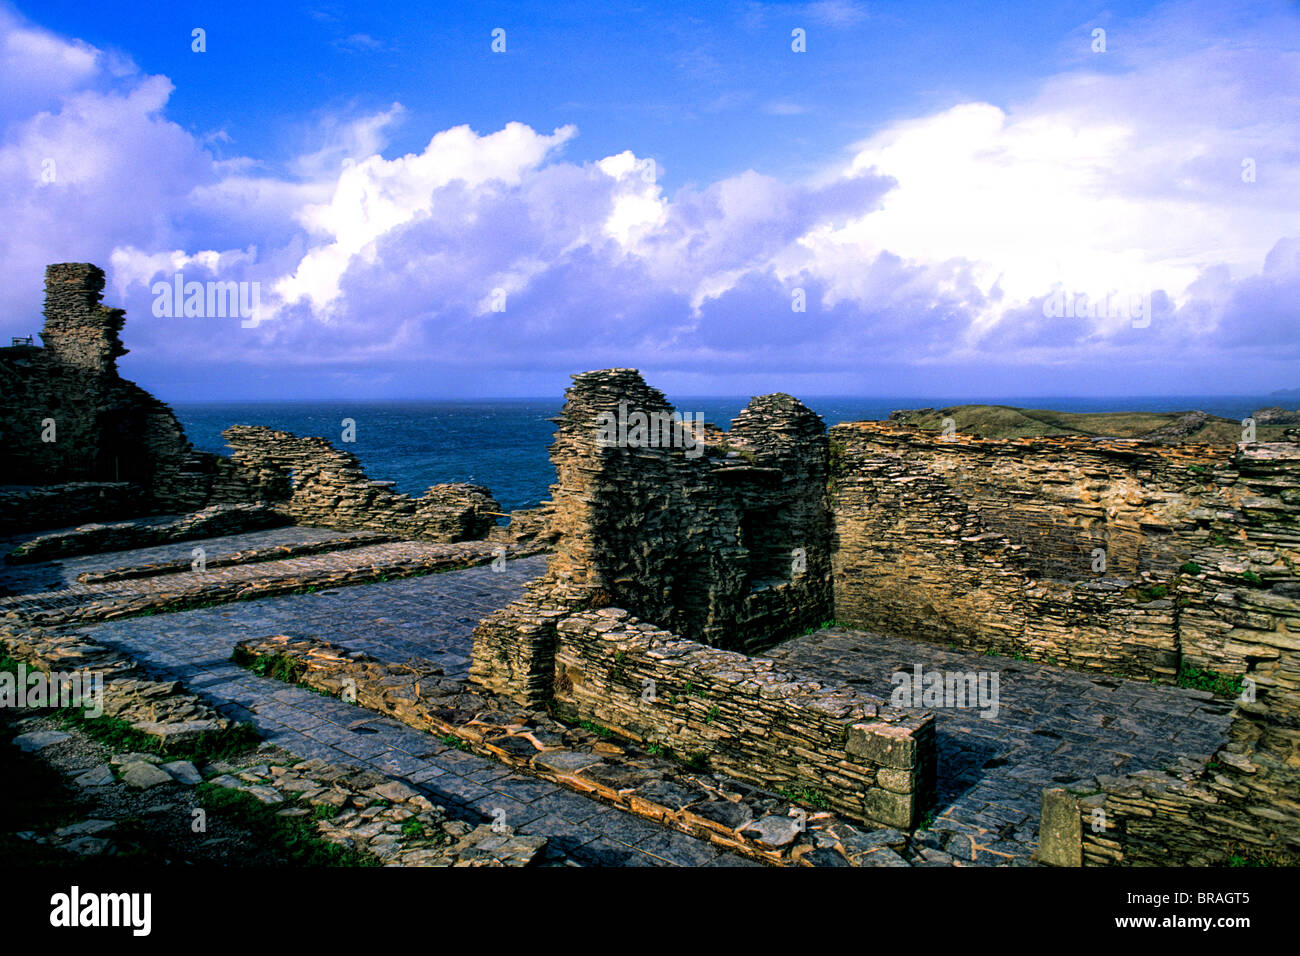 King Arthur's home Tintagel Castle in Cornwall England - Stock Image